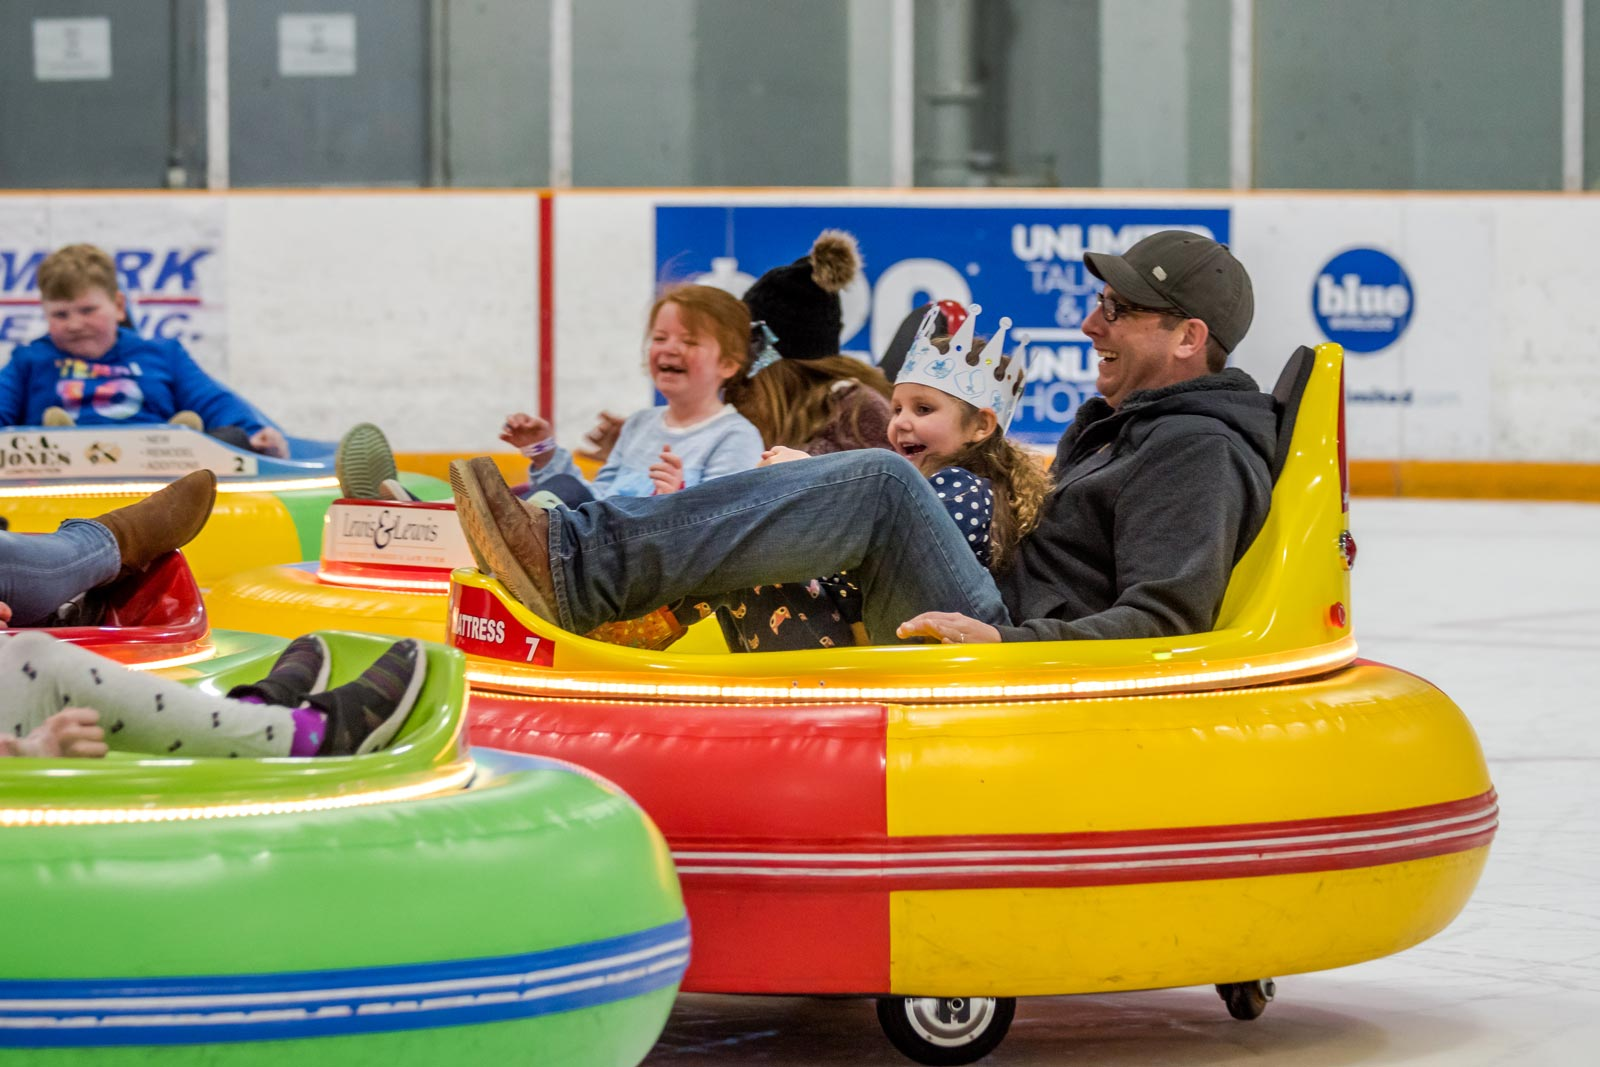 A young girl wearing a Birthday Crown bumps into her friends in the Ice Bumper Car